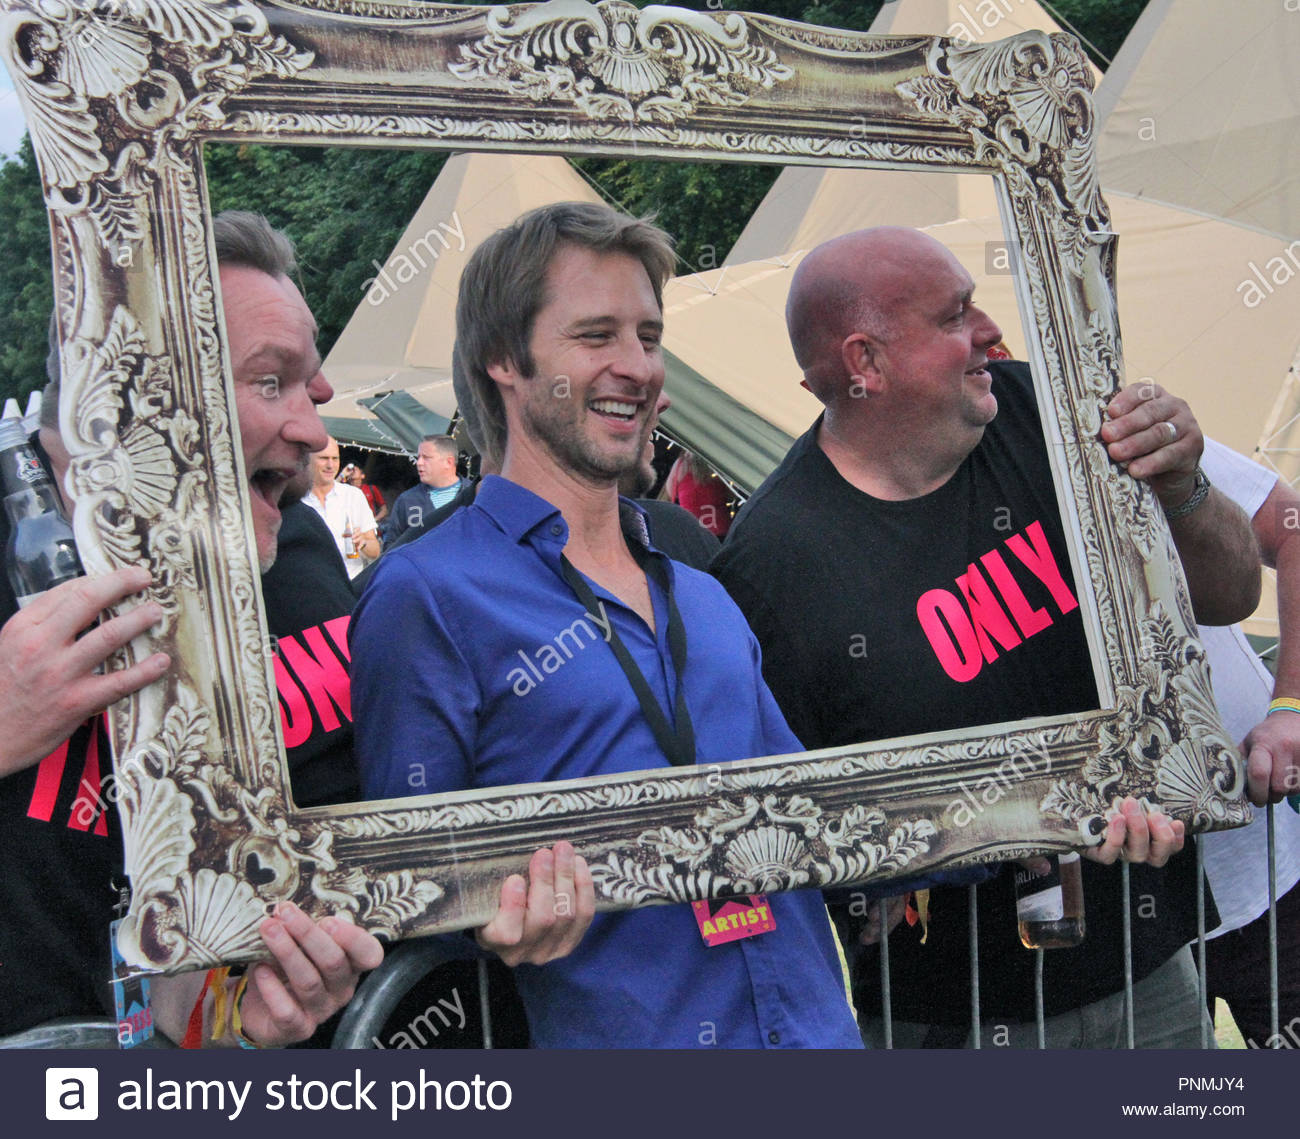 chesney hawkes at rewind north at capesthorne hall, siddington, cheshire on saturday 08 August 2015 - Stock Image